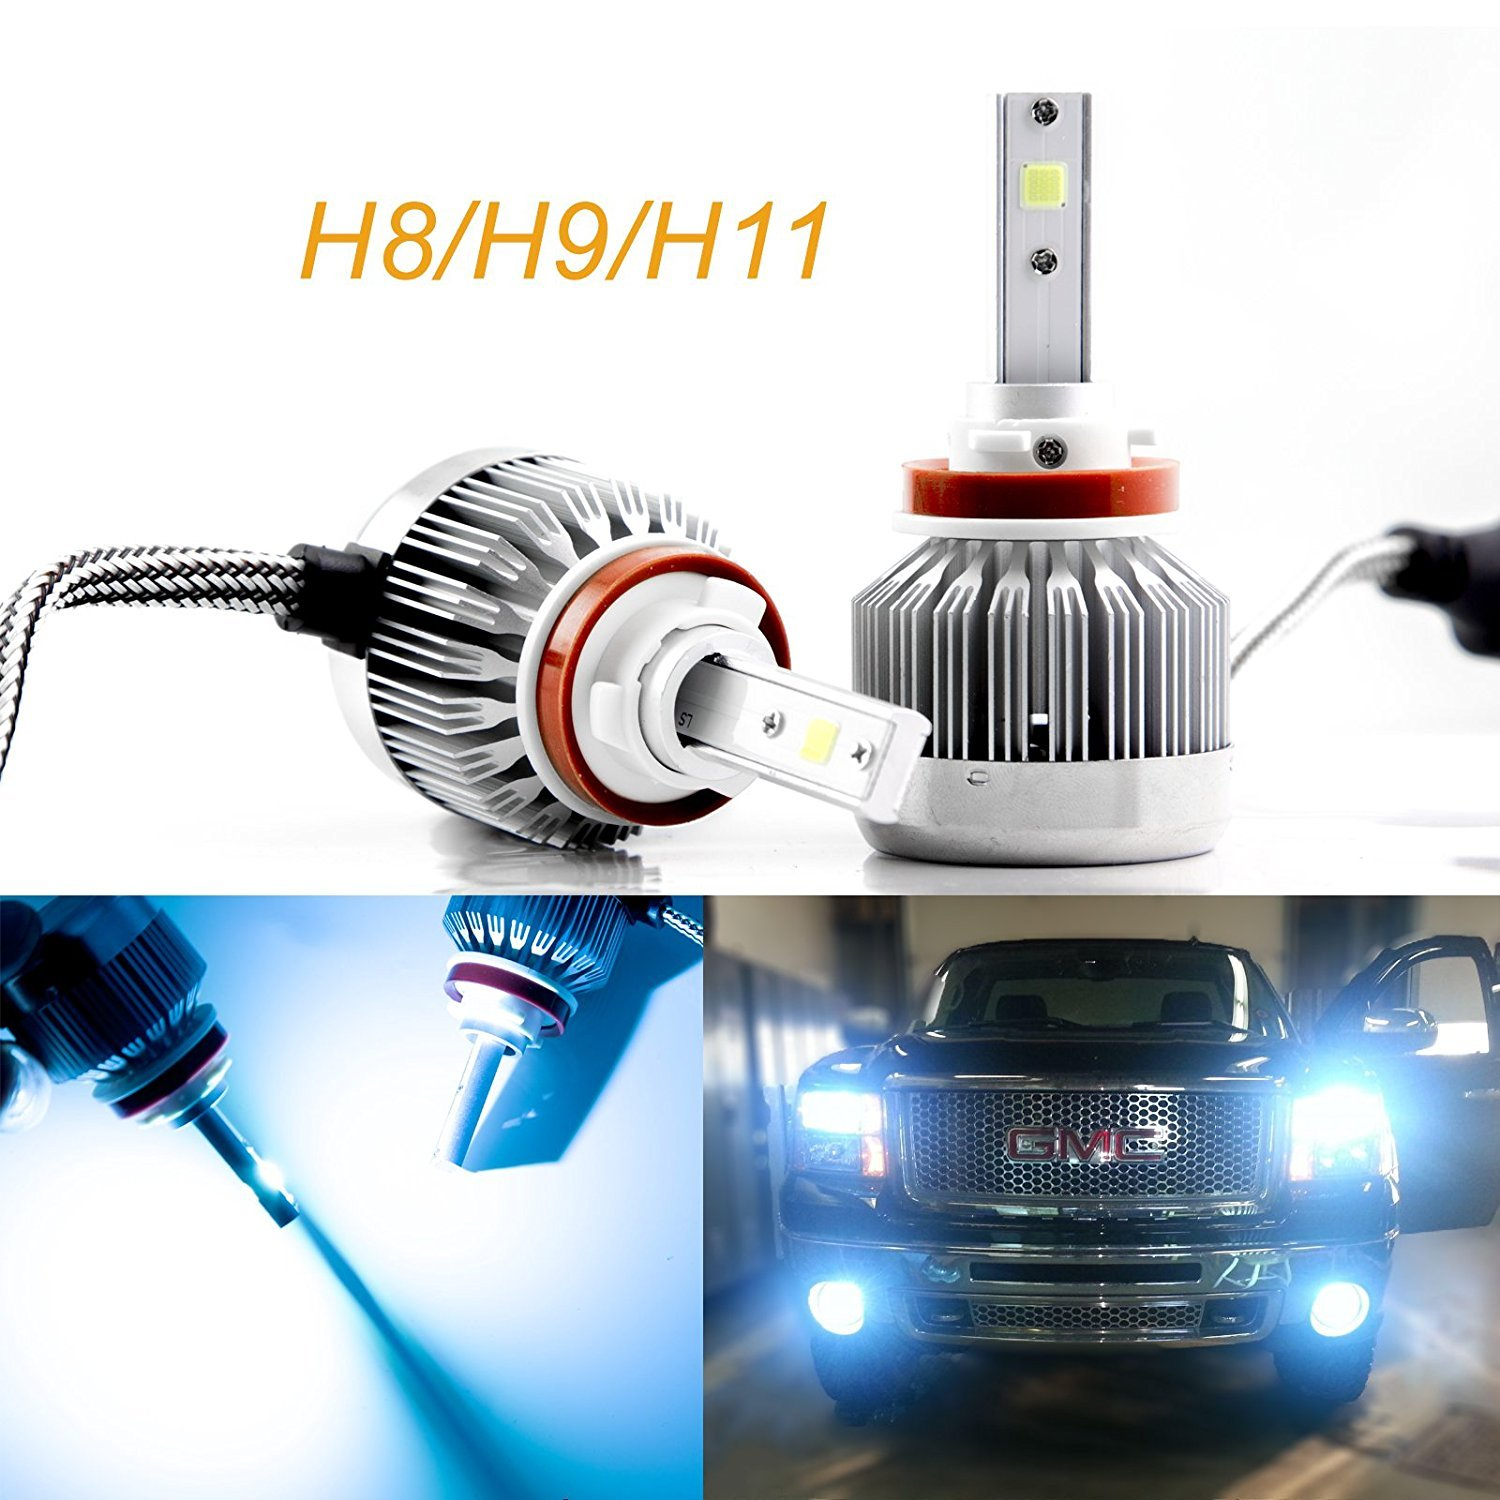 Xotic Tech H8 H9 H11 LED Headlight Bulbs, Ice Blue 8000K COB LED Headlight Conversion Kit For High / Low Beam Daytime Running Lights